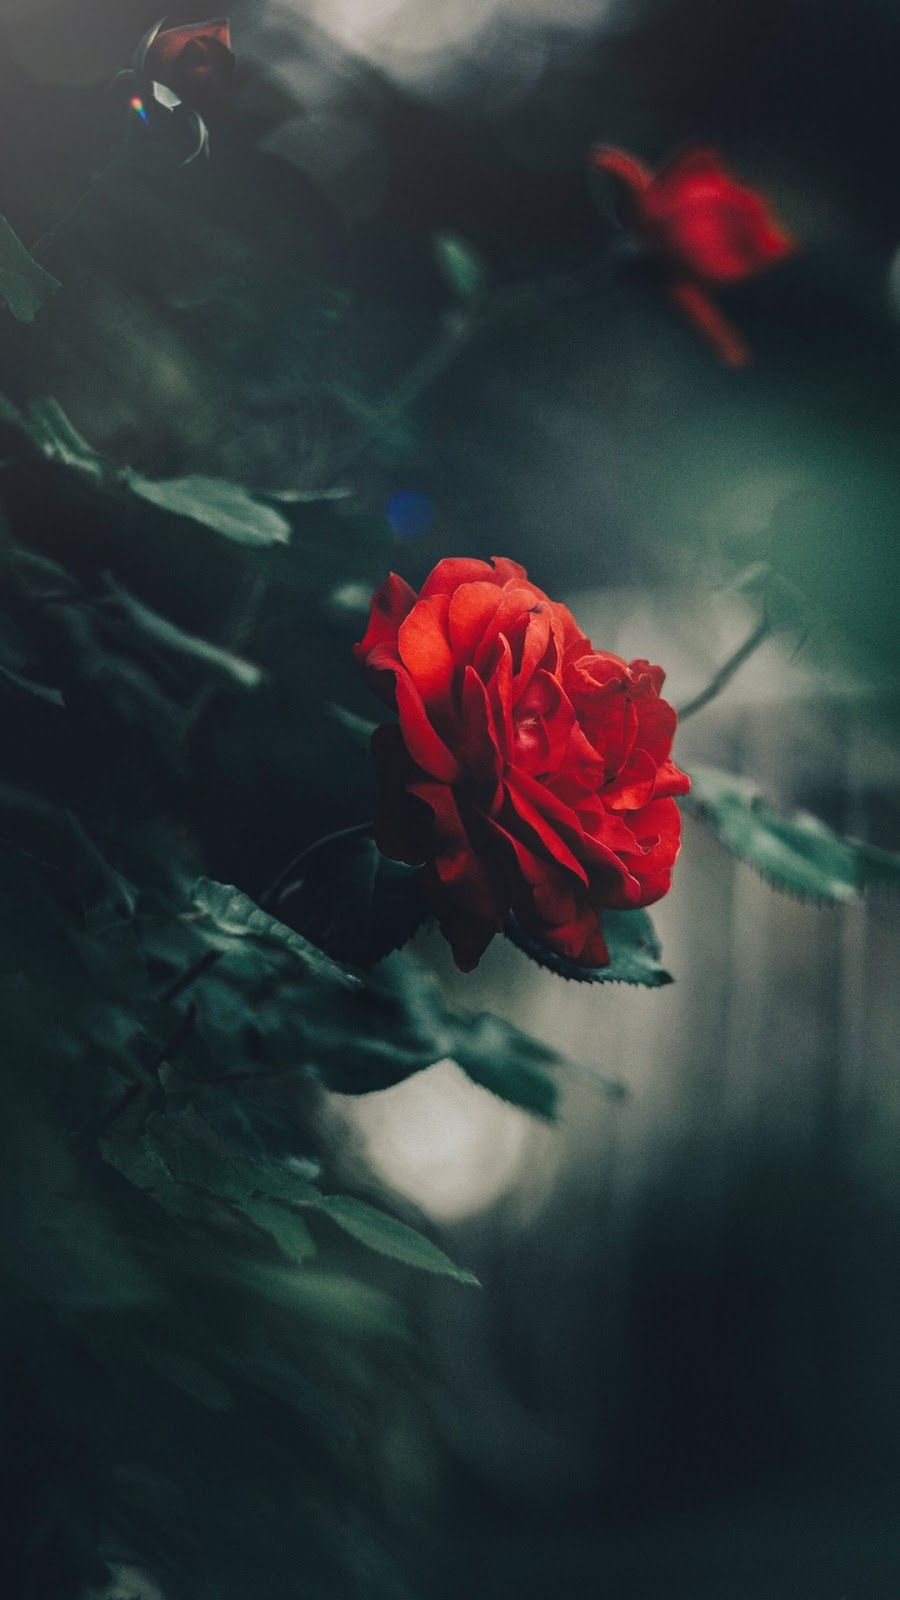 Red Rose Rose Flower Photos Flower Wallpaper Beautiful Flowers Wallpapers